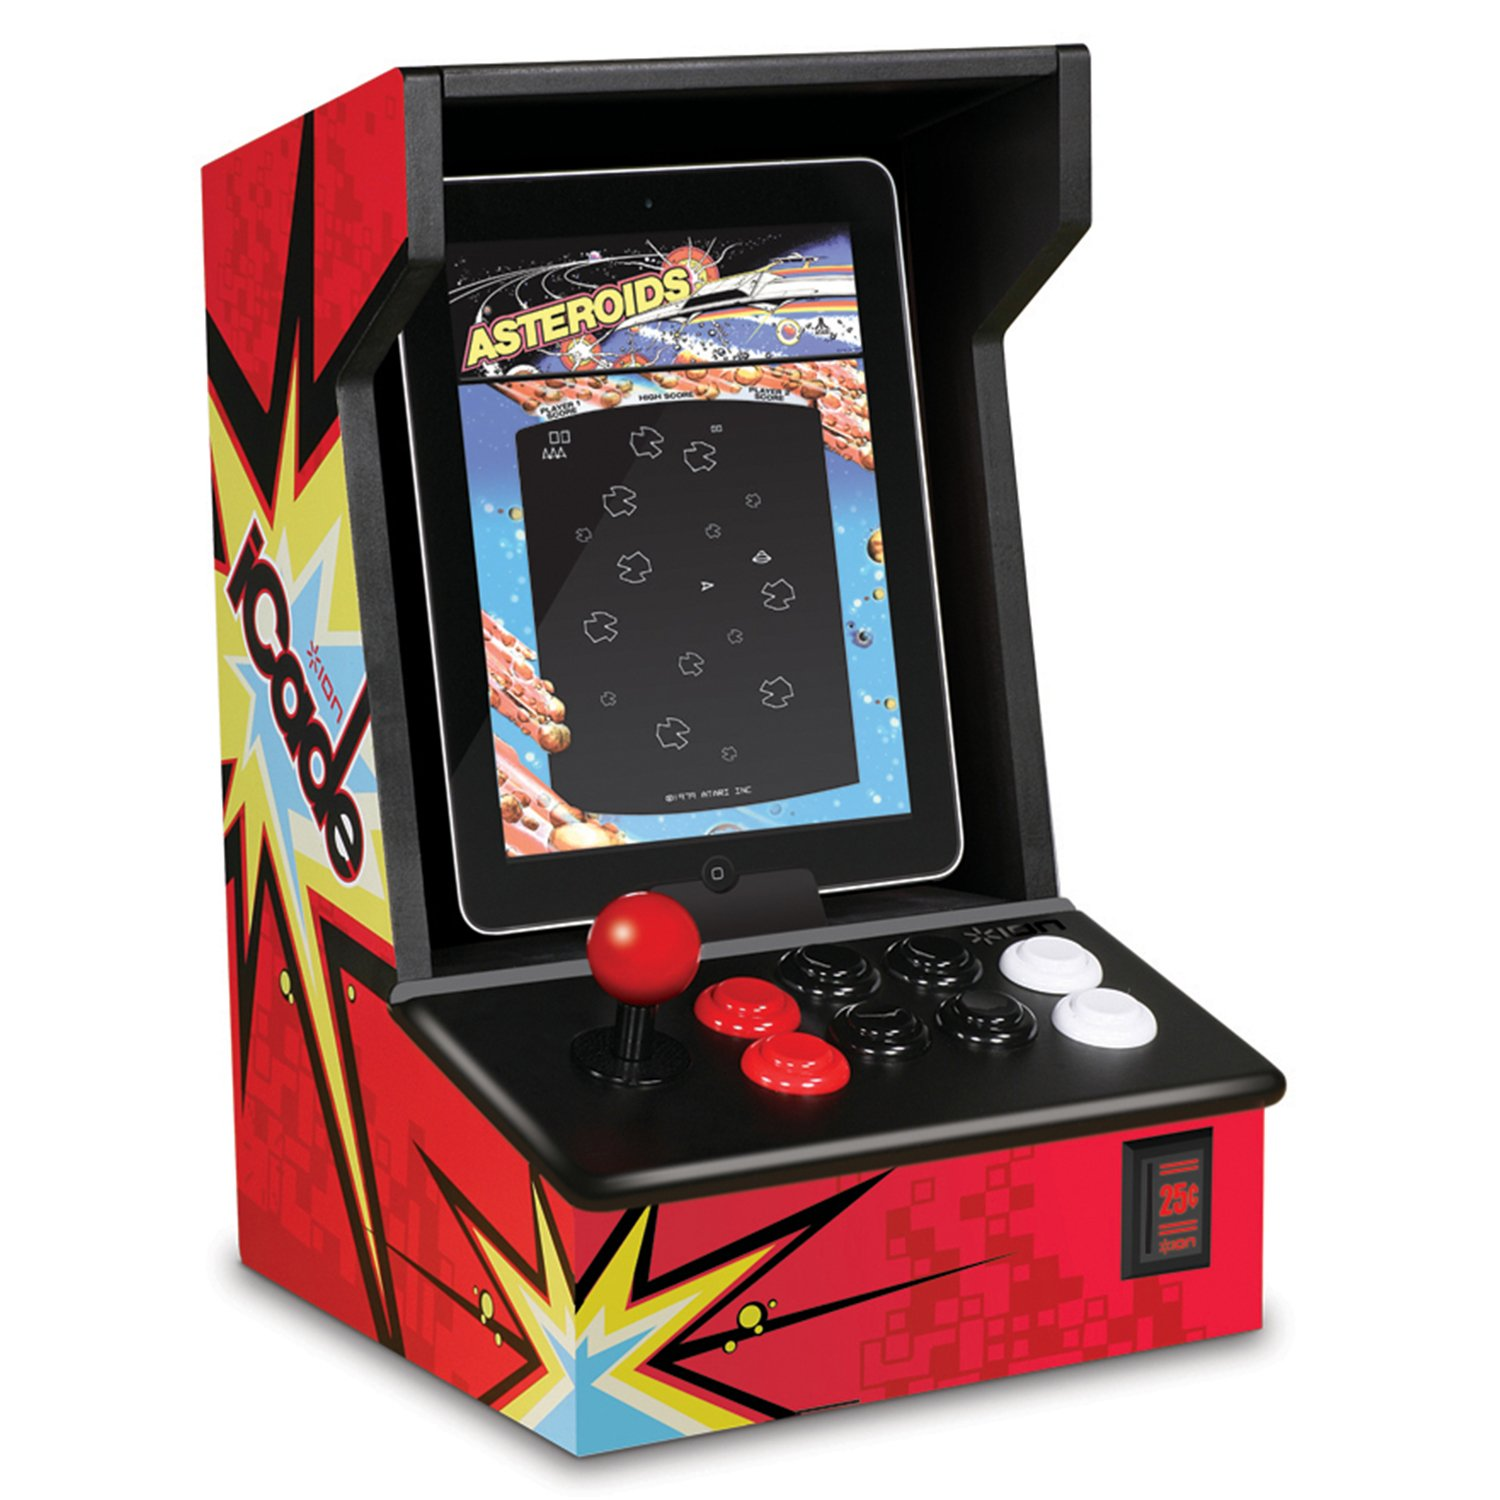 Arcade Cabinet Dimensions Amazoncom Ion Icade Arcade Bluetooth Cabinet For Ipad Sports